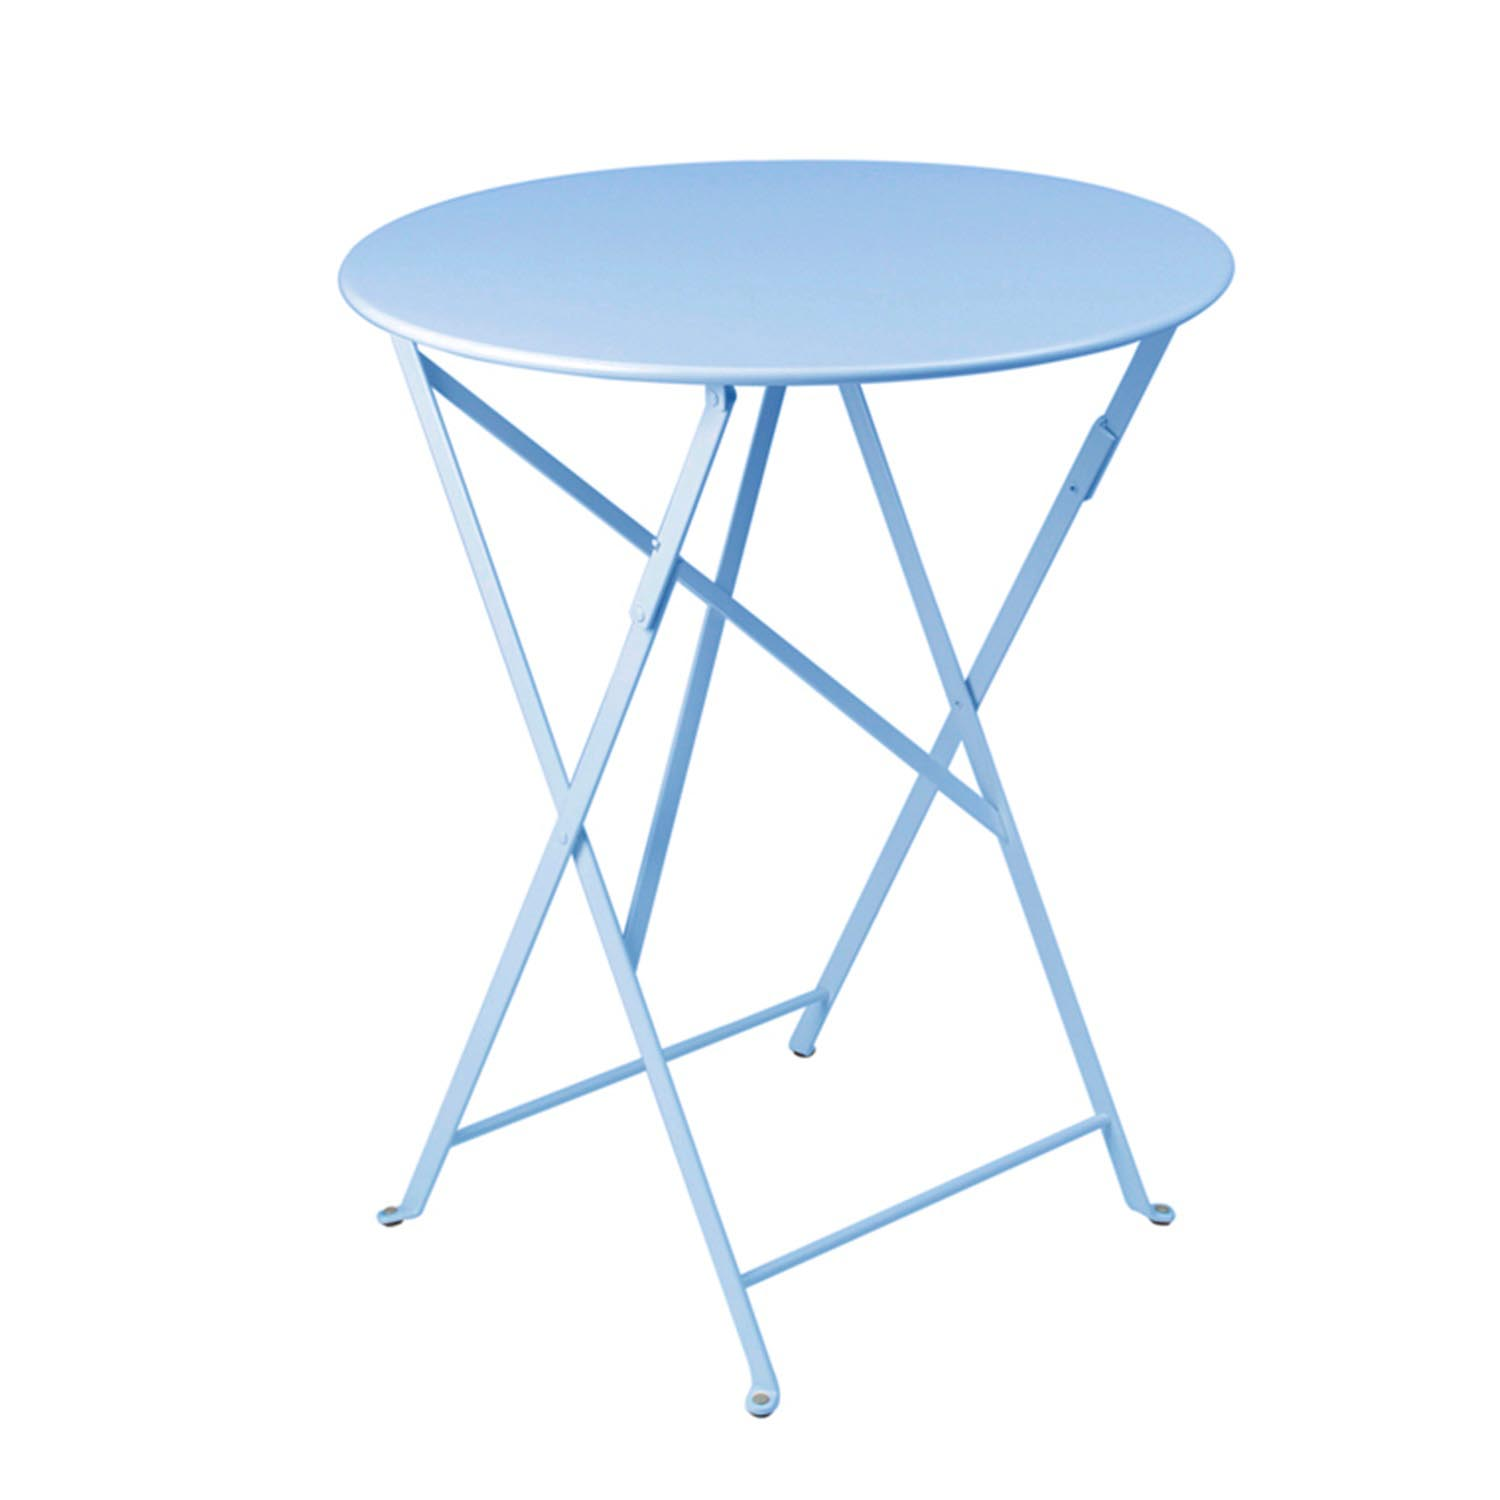 Bistro 24 Inch Folding Table In Fjord Blue